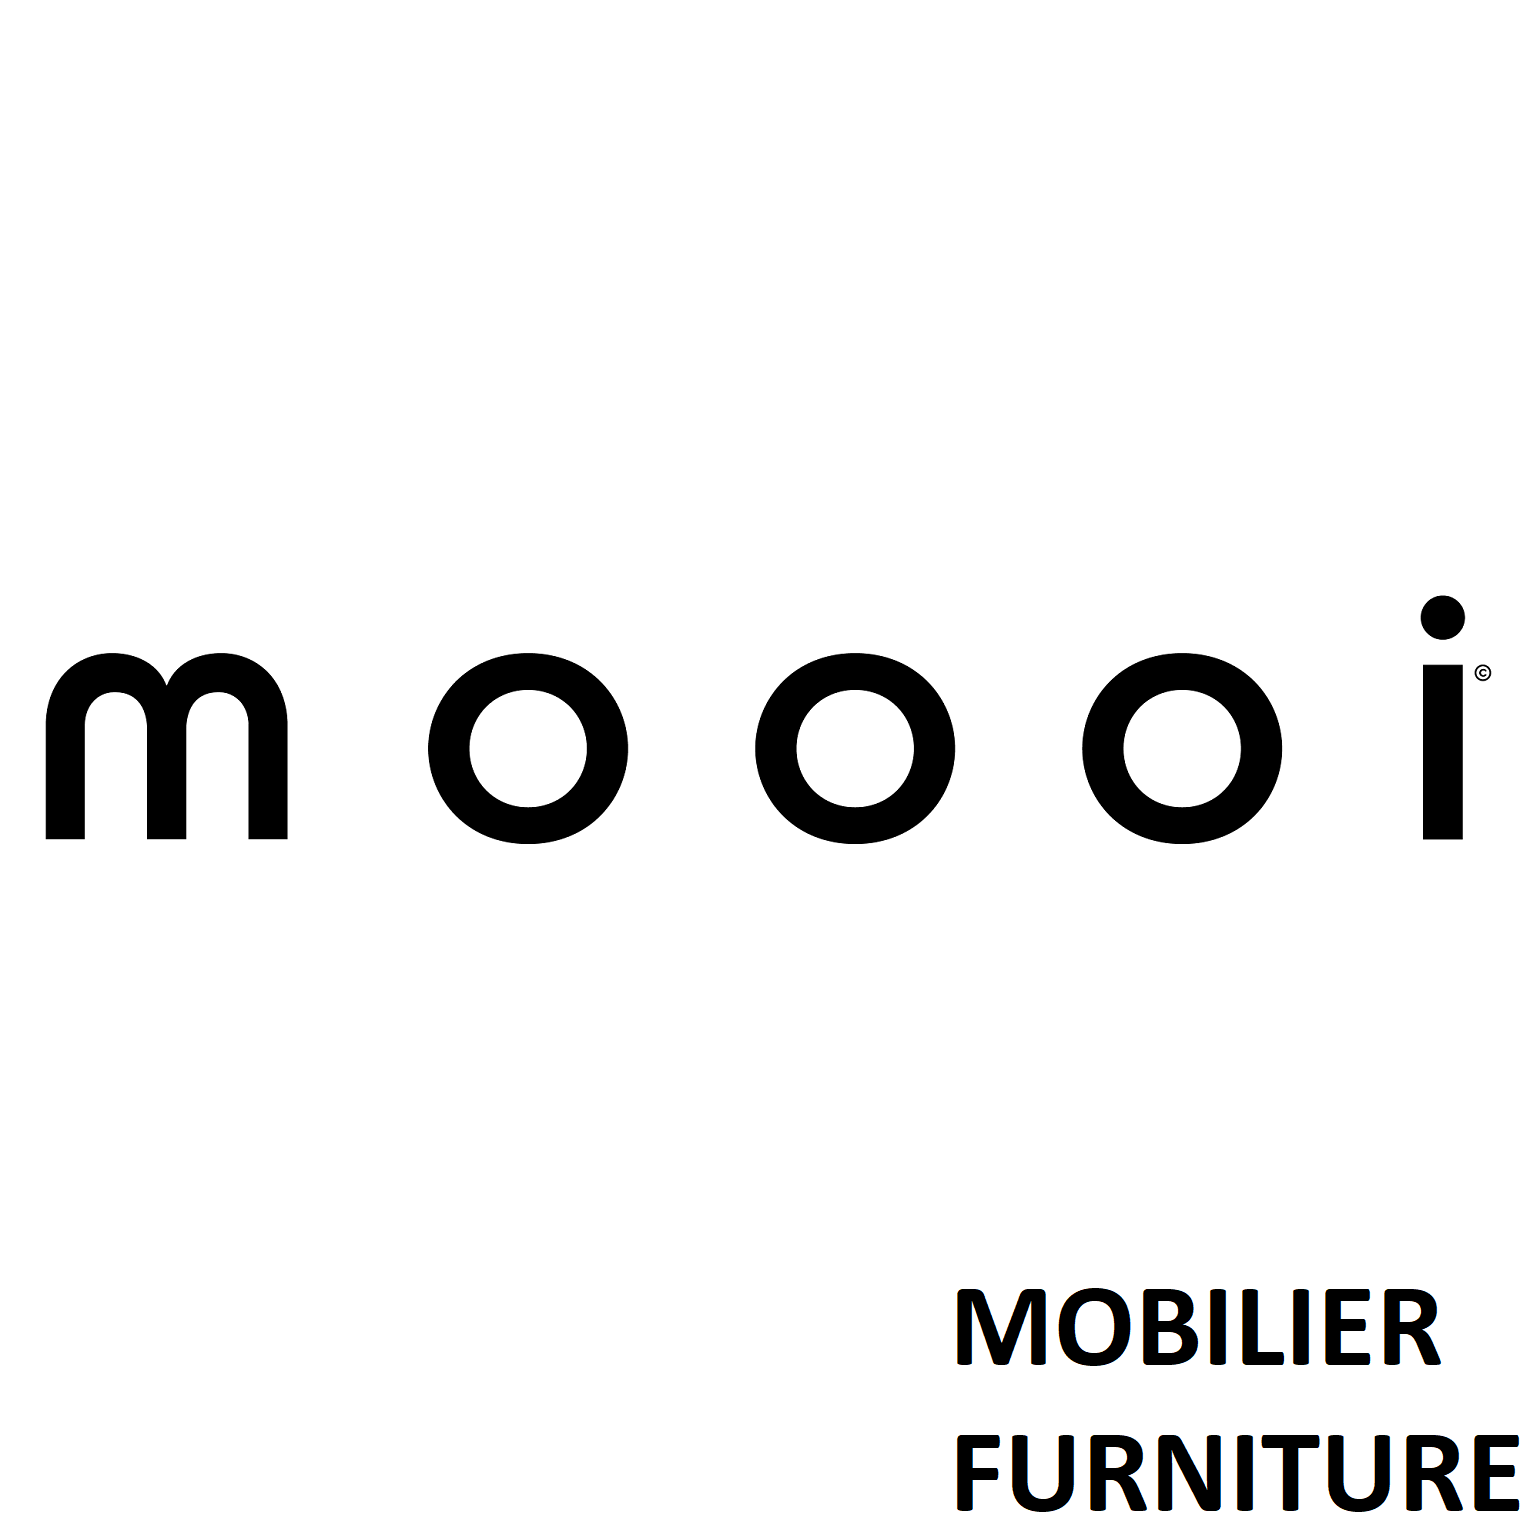 Moooi Mobilier